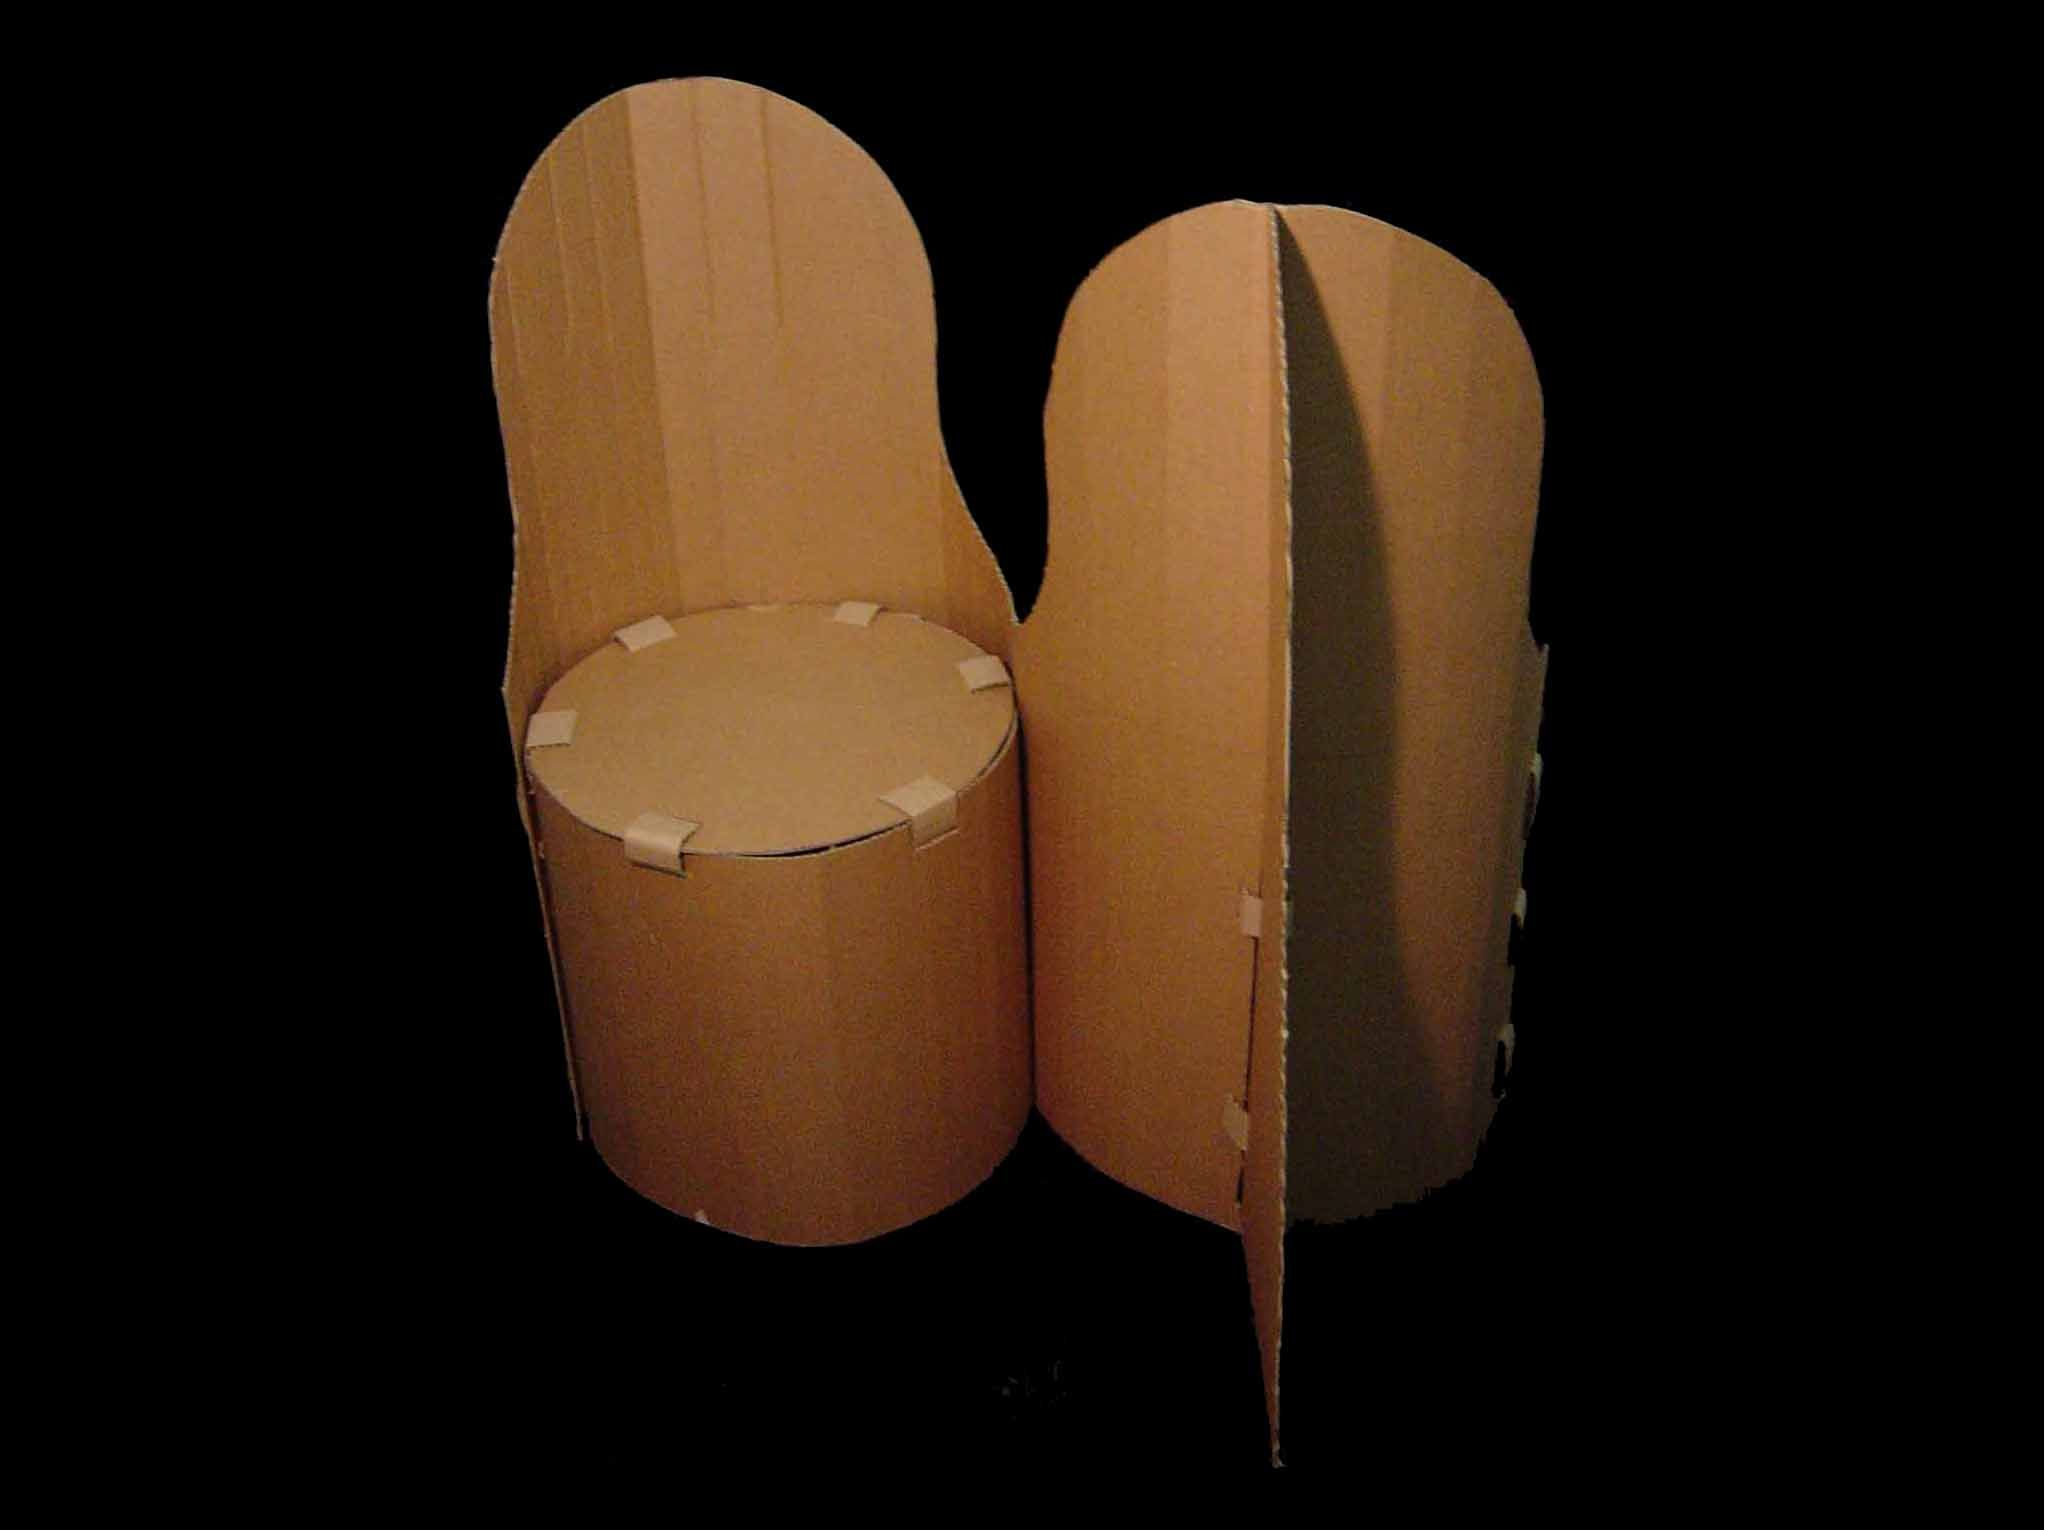 cool and easy design | Cardboard Chairs | Pinterest | Cardboard ...